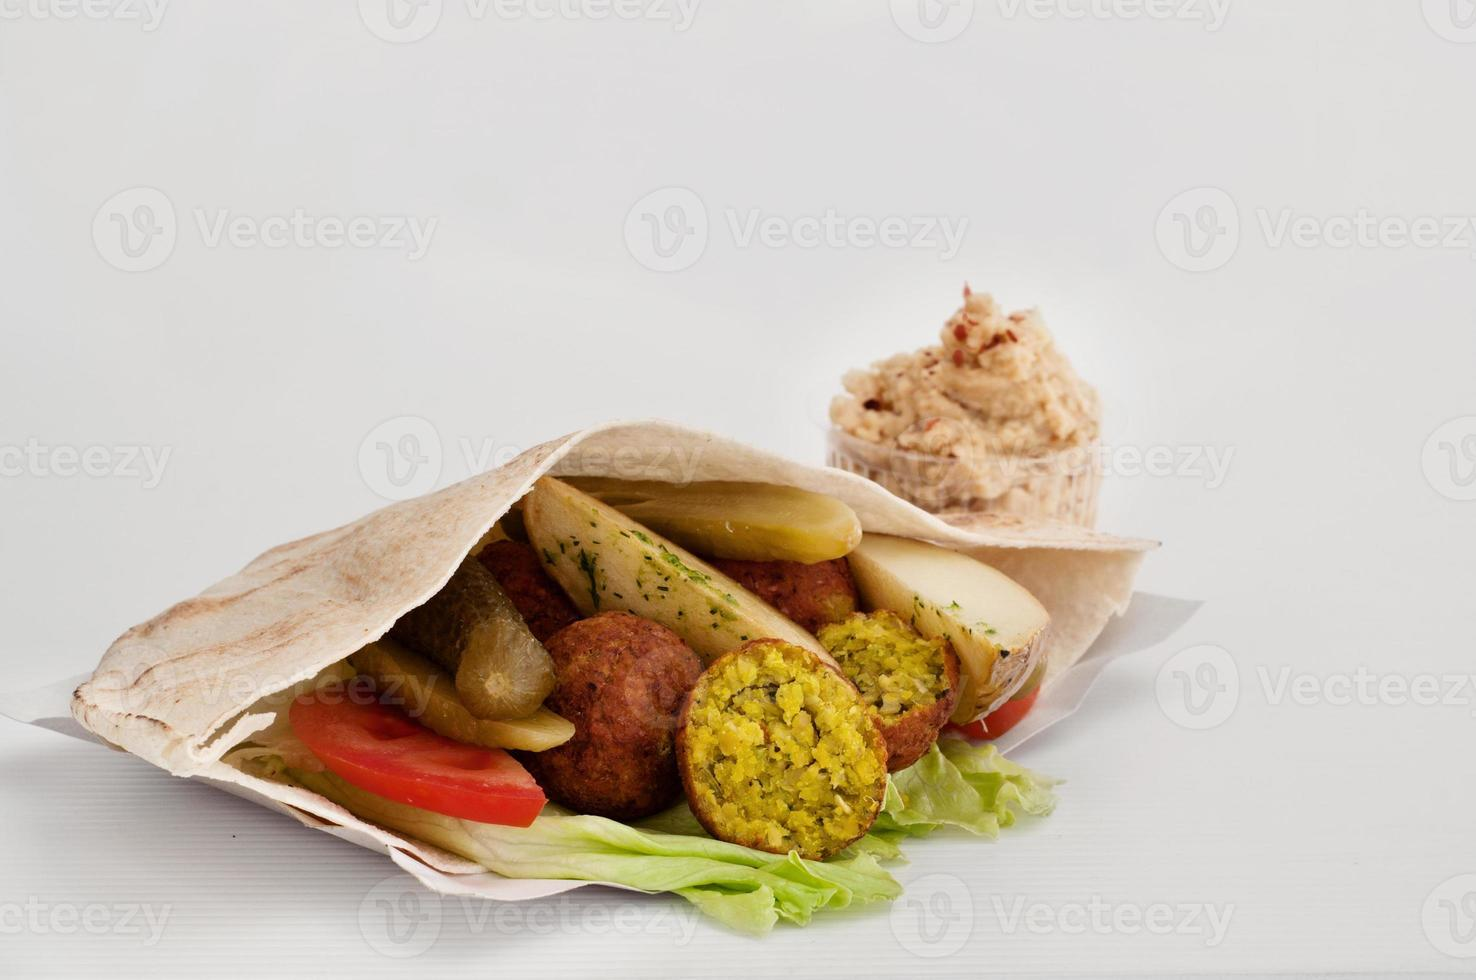 falafel with vegetables in pita bread and sauce photo